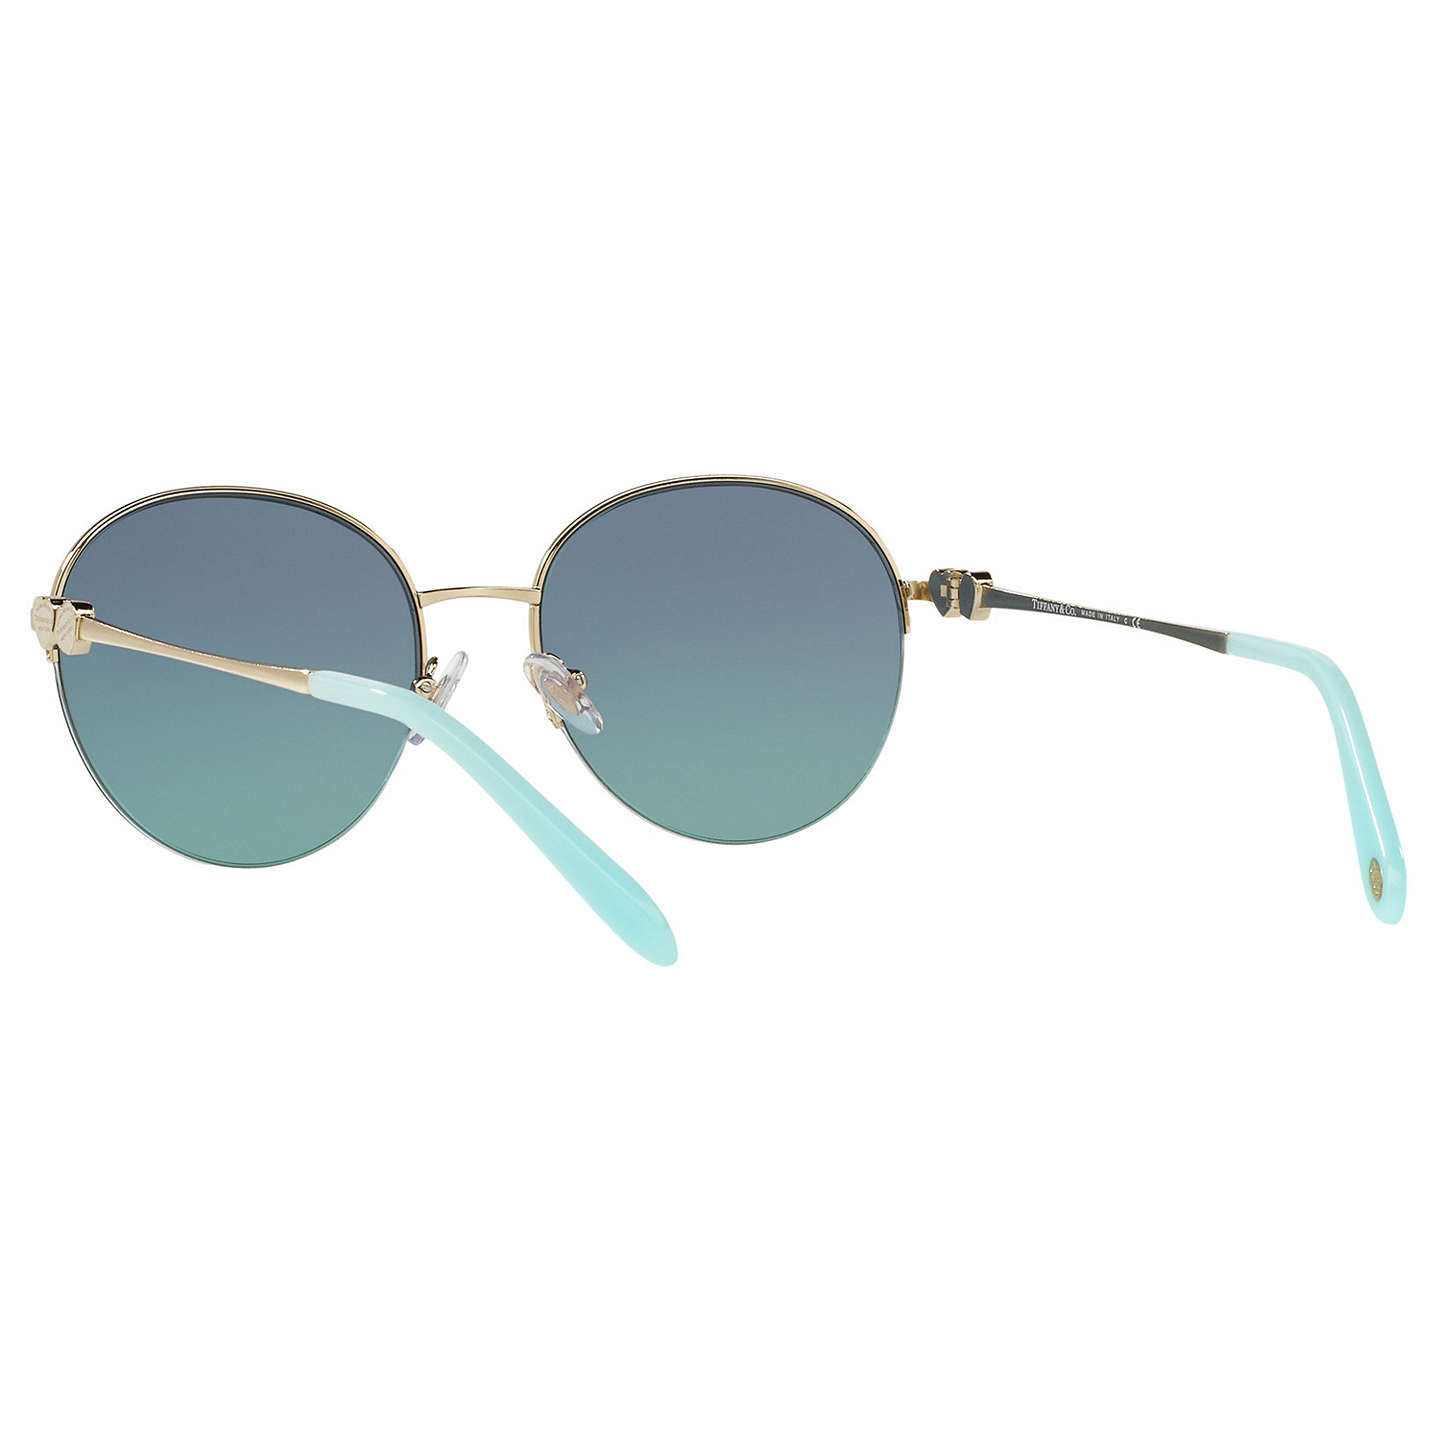 BuyTiffany & Co TF3053 Round Sunglasses, Gold/Blue Gradient Online at johnlewis.com